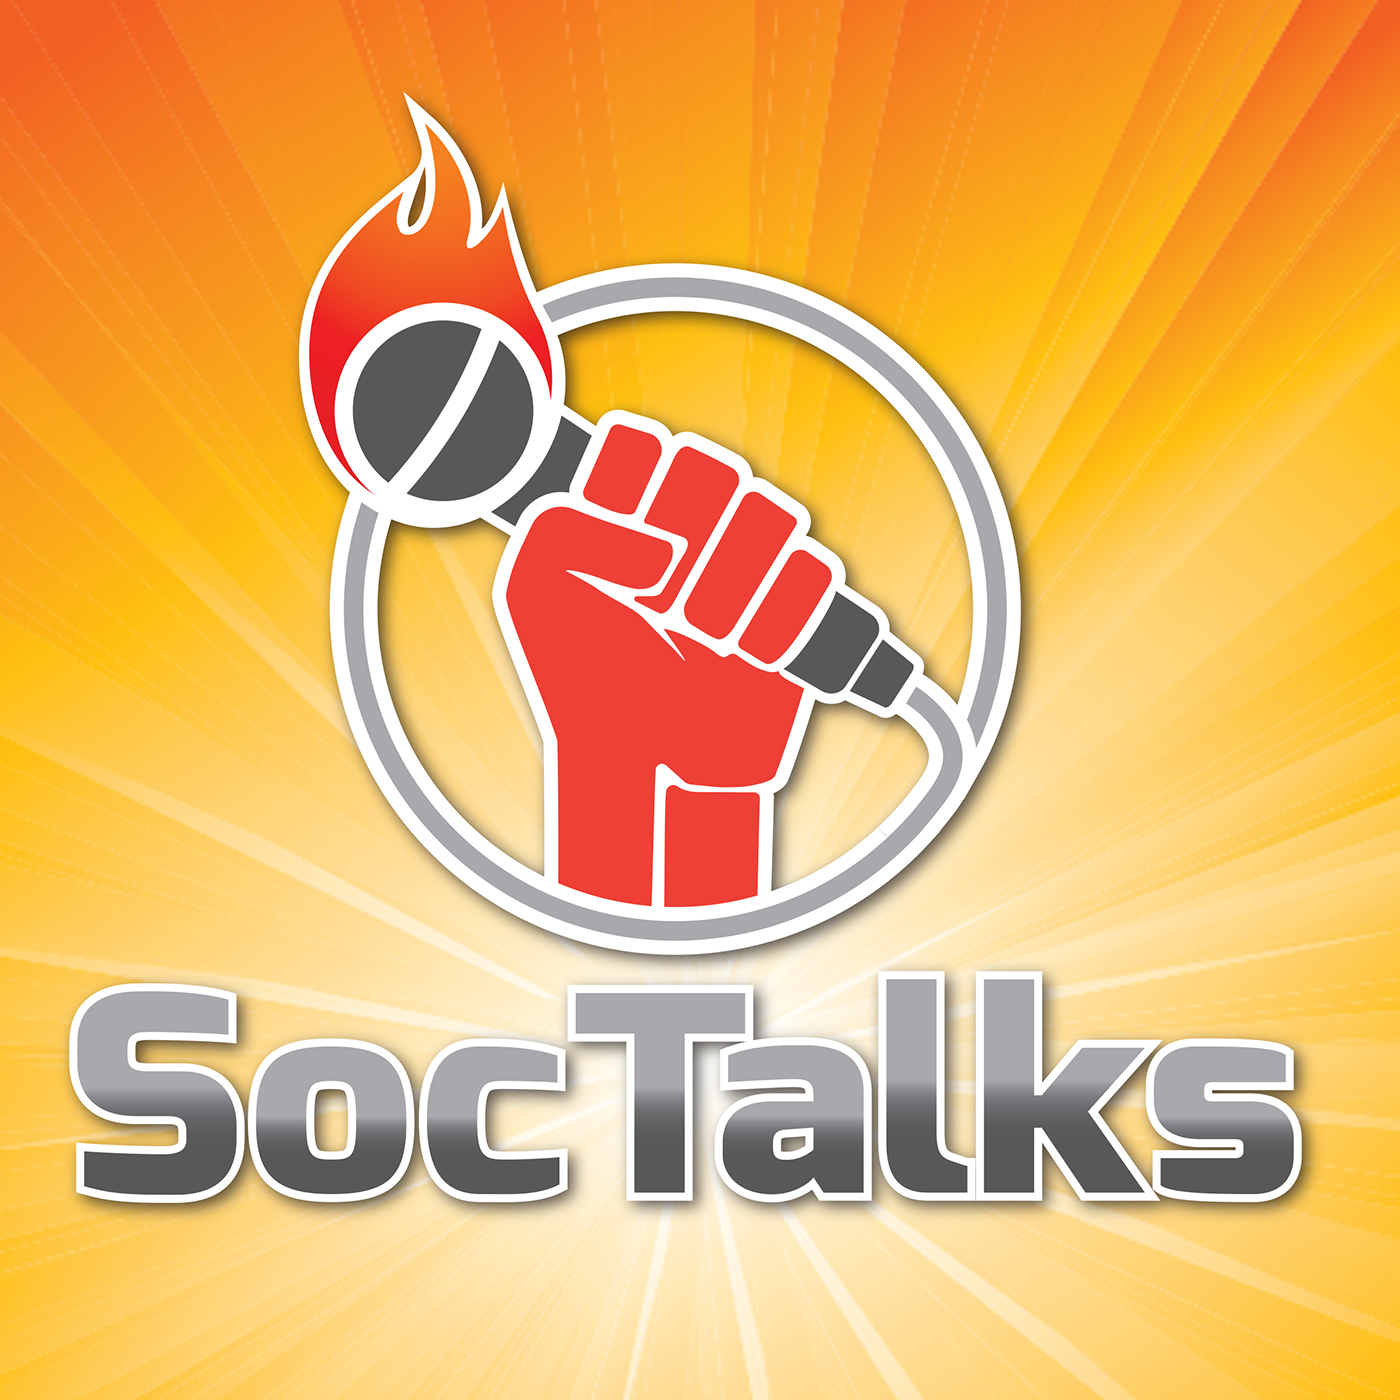 SocTalks Episode 025 Season 2 show art